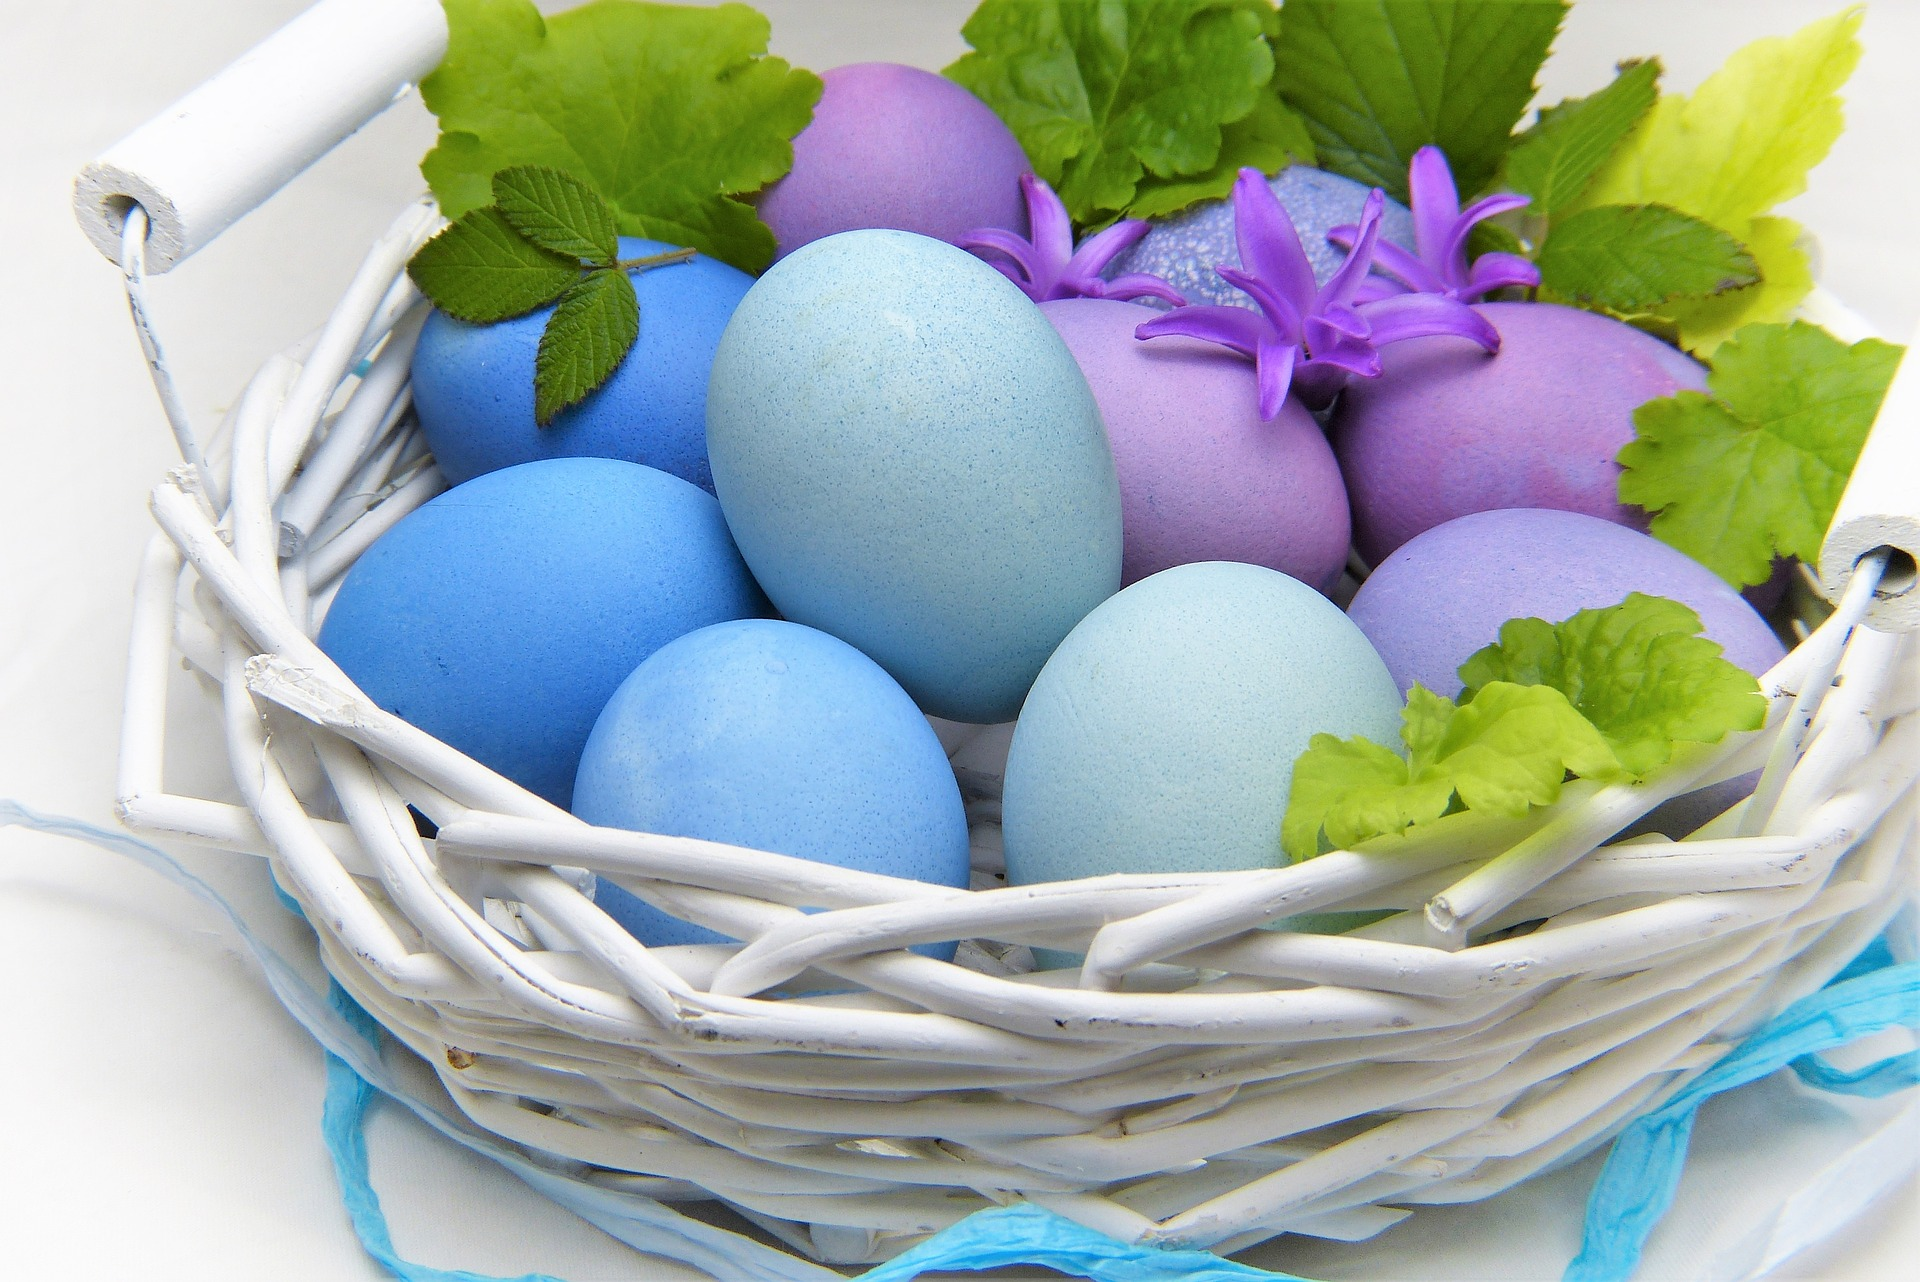 How to have an earth-friendly Easter